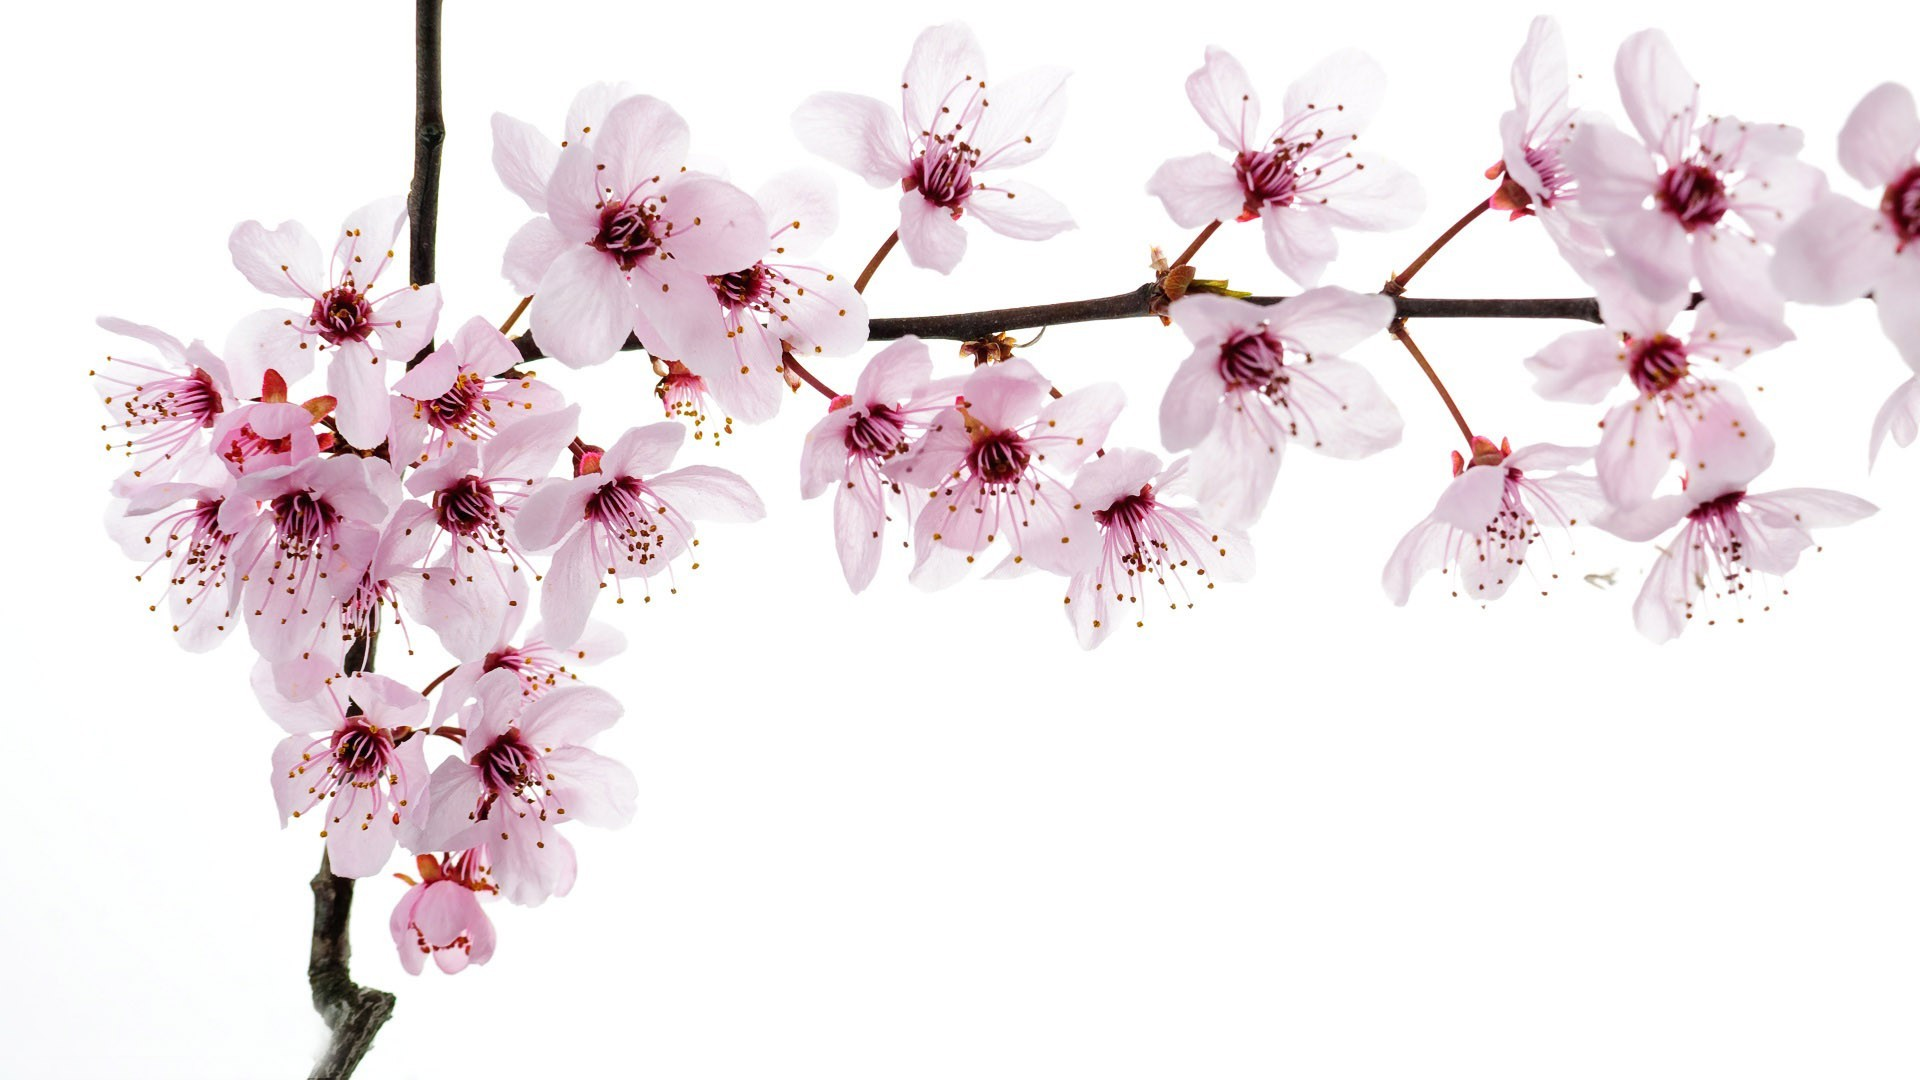 Cherry Blossom Wallpaper Backgrounds Cherry Blossoms hd Wallpapers 1920x1080